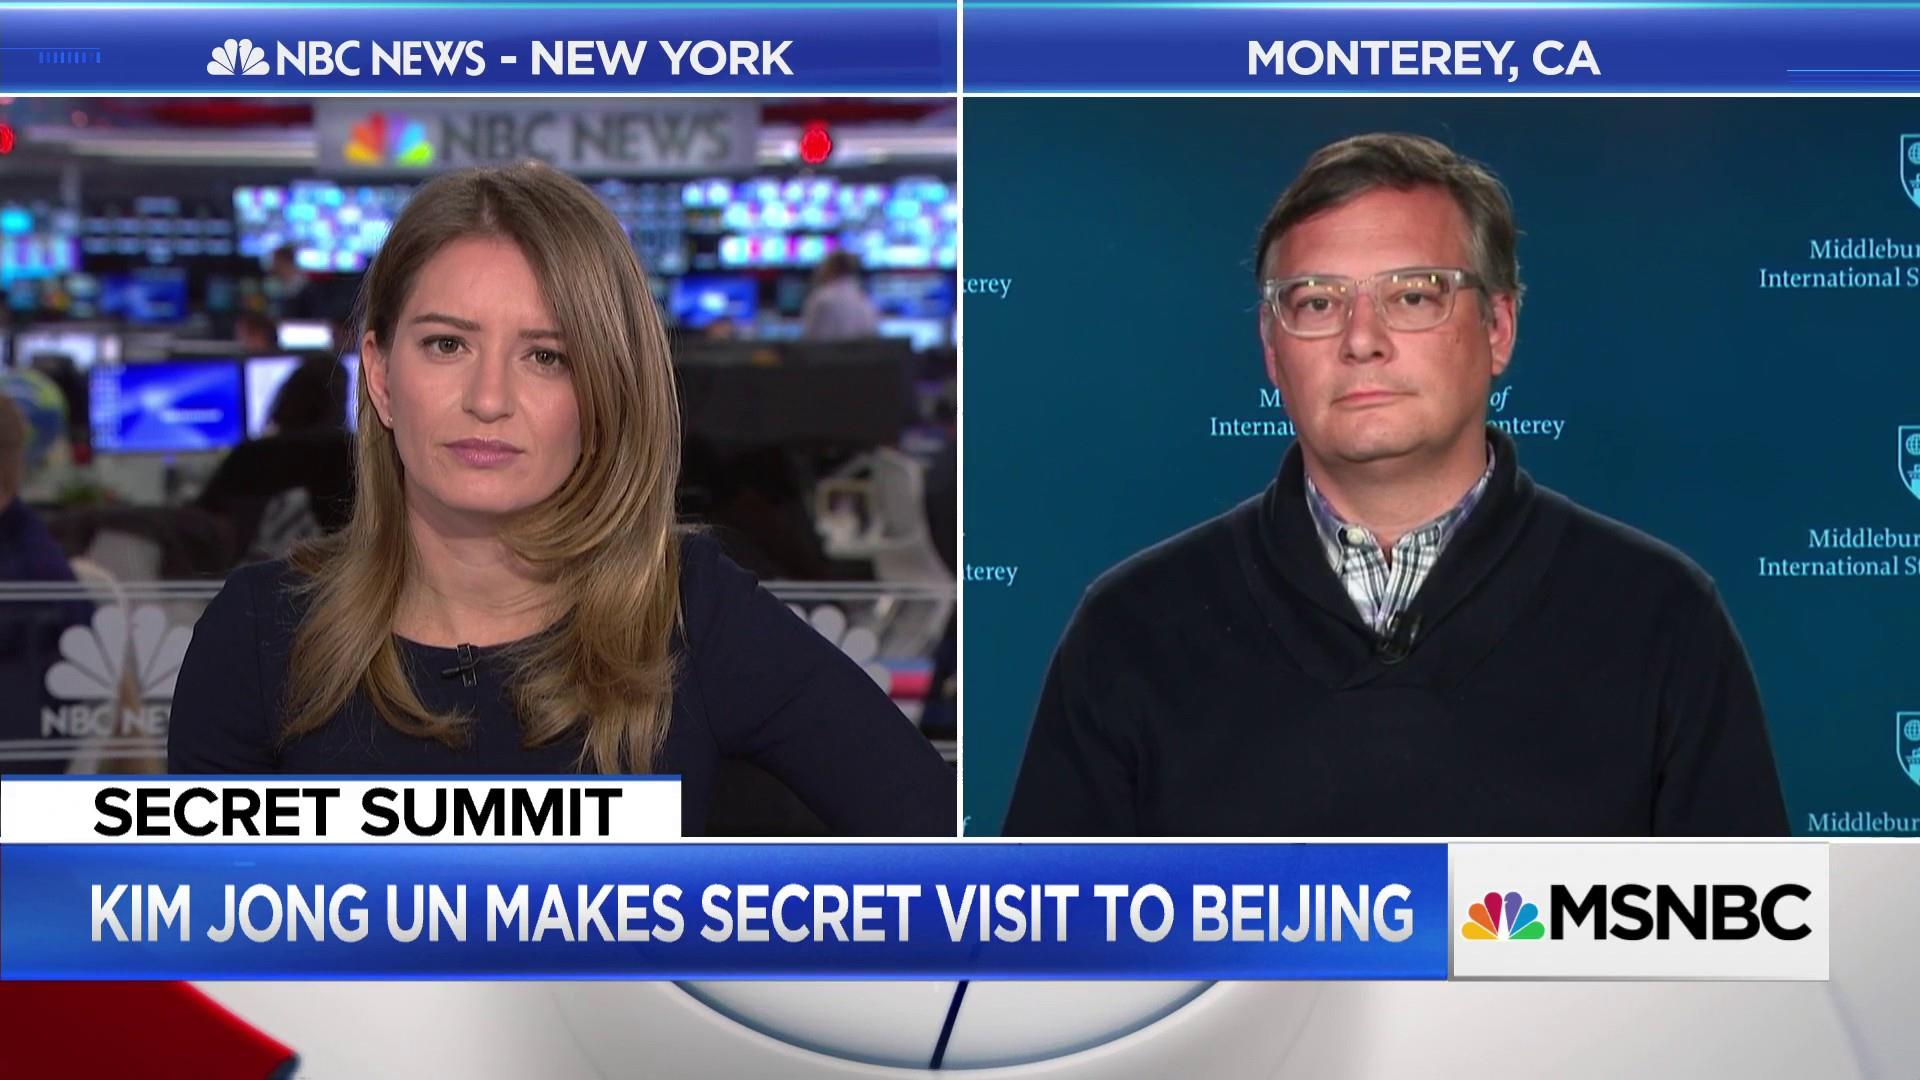 NK Scholar: China and North Korea much closer than in the past